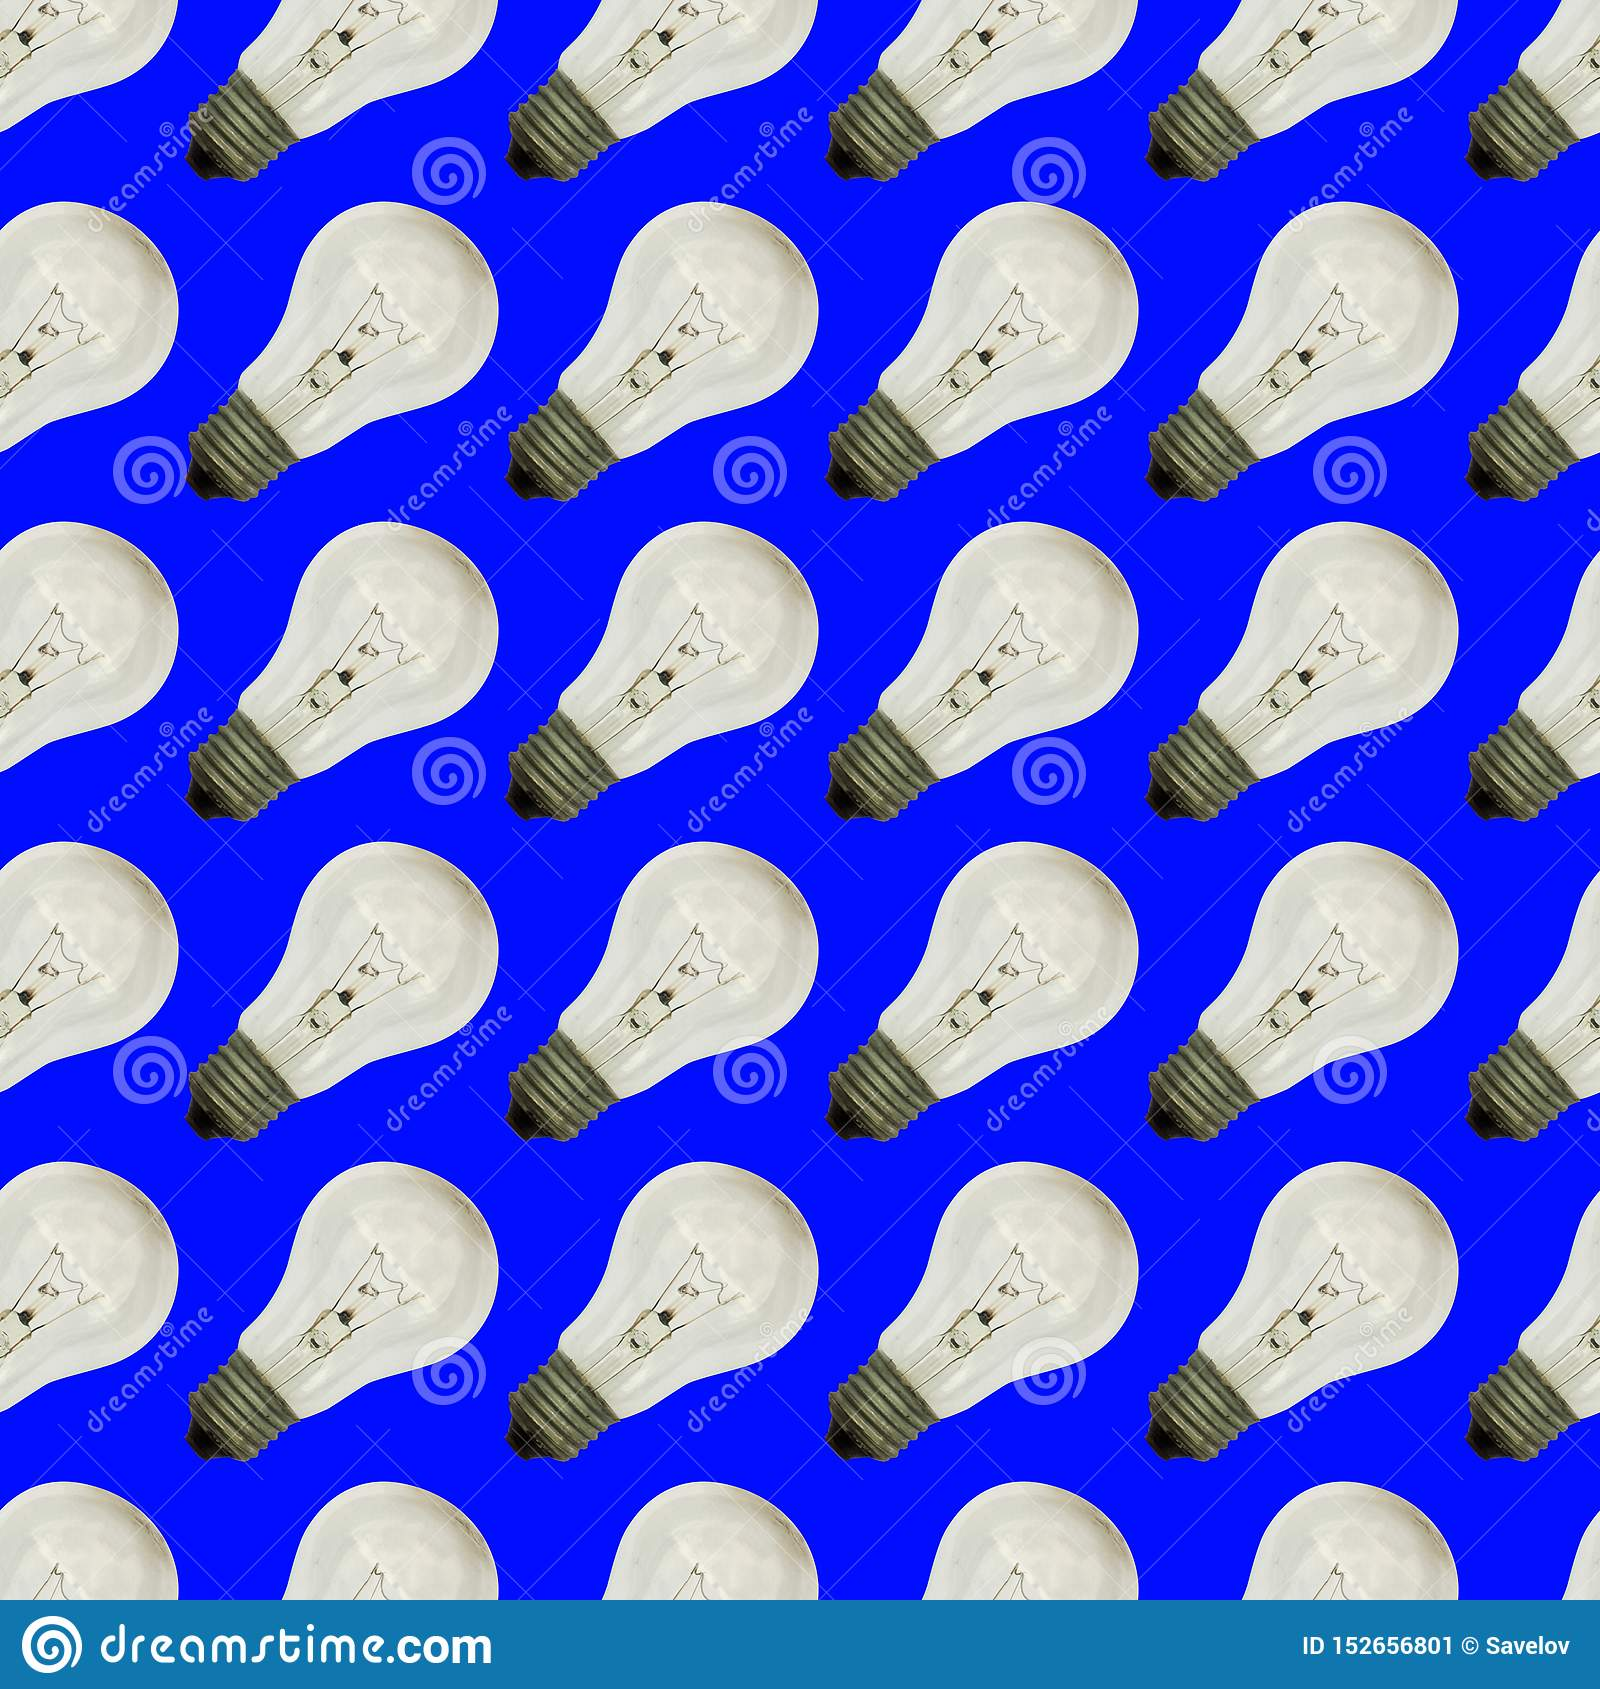 Seamless pattern of vintage light bulbs on a blue color